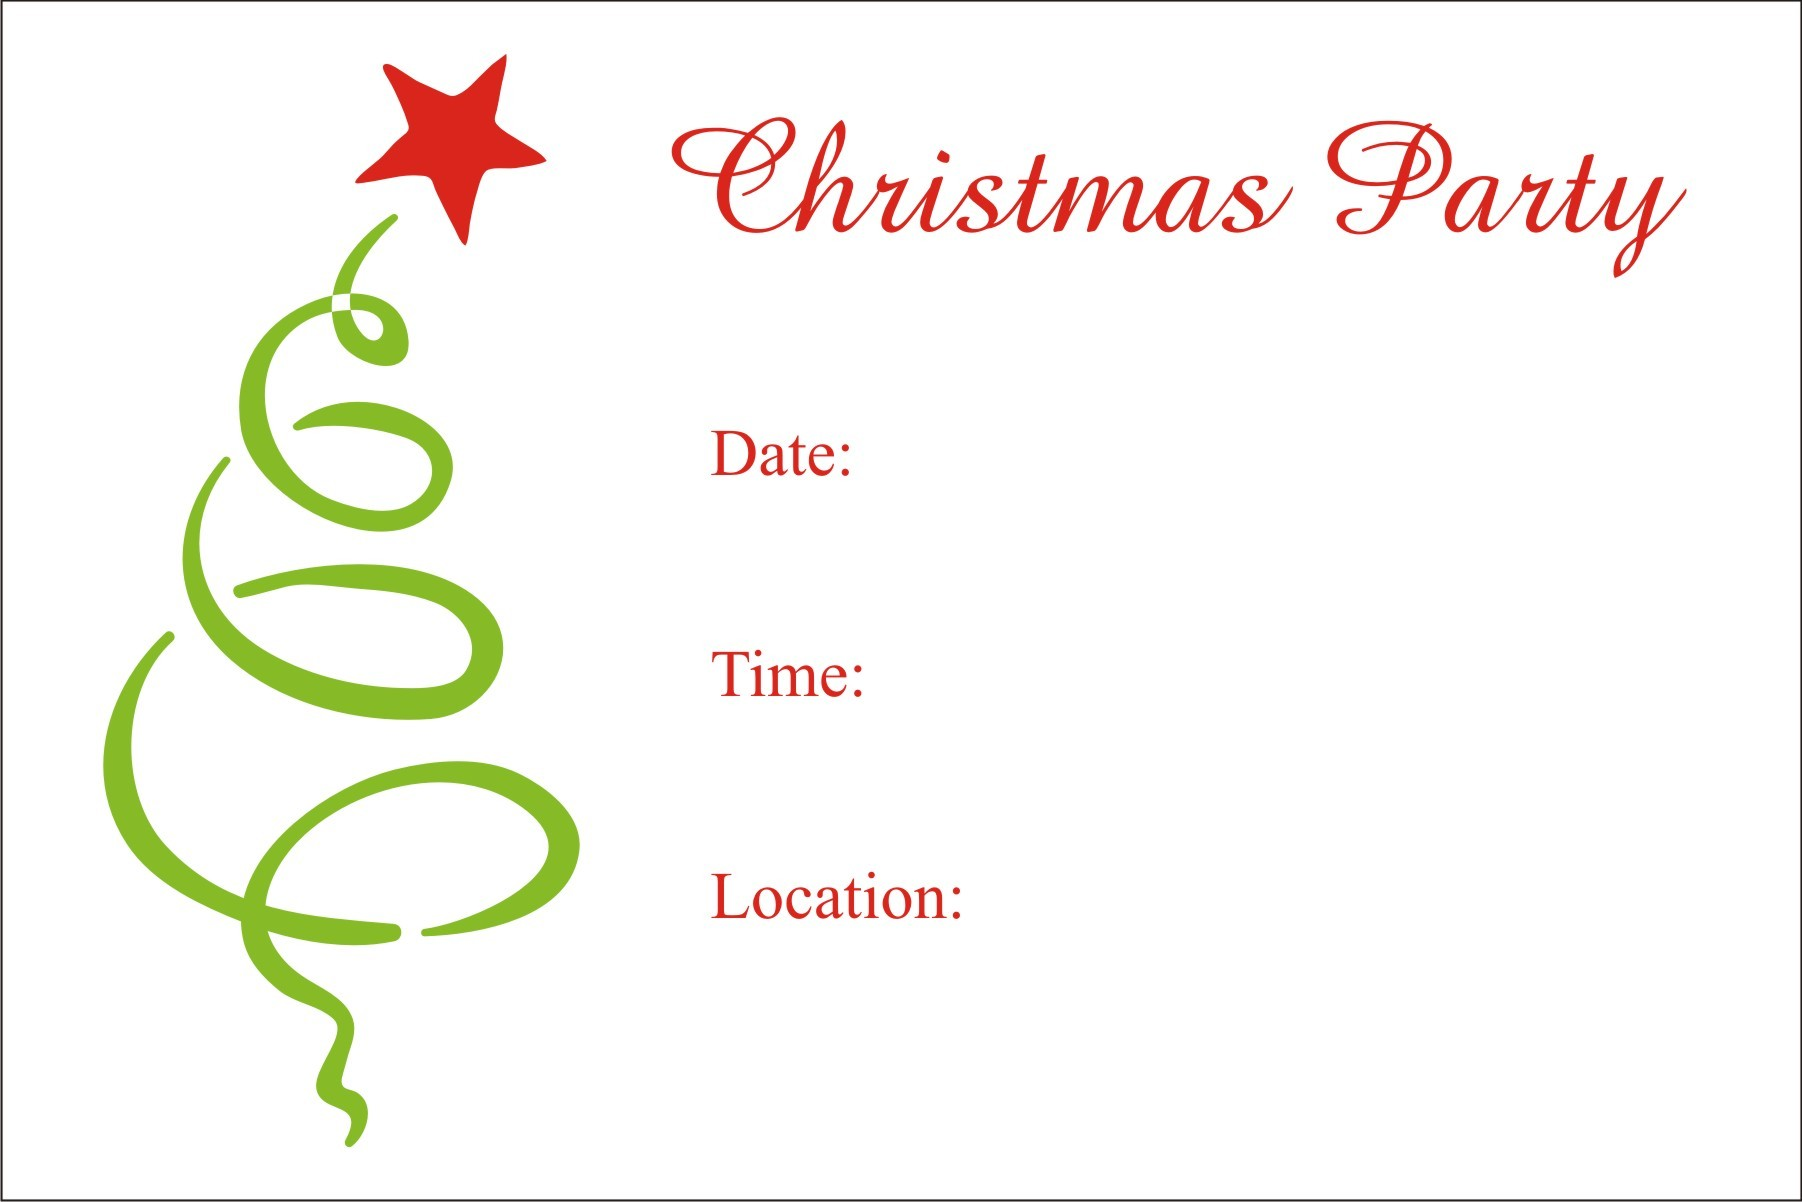 Christmas Party Free Printable Holiday Invitation Personalized Party ...: www.personalizedpartyinvites.com/shop/christmas-party-free...